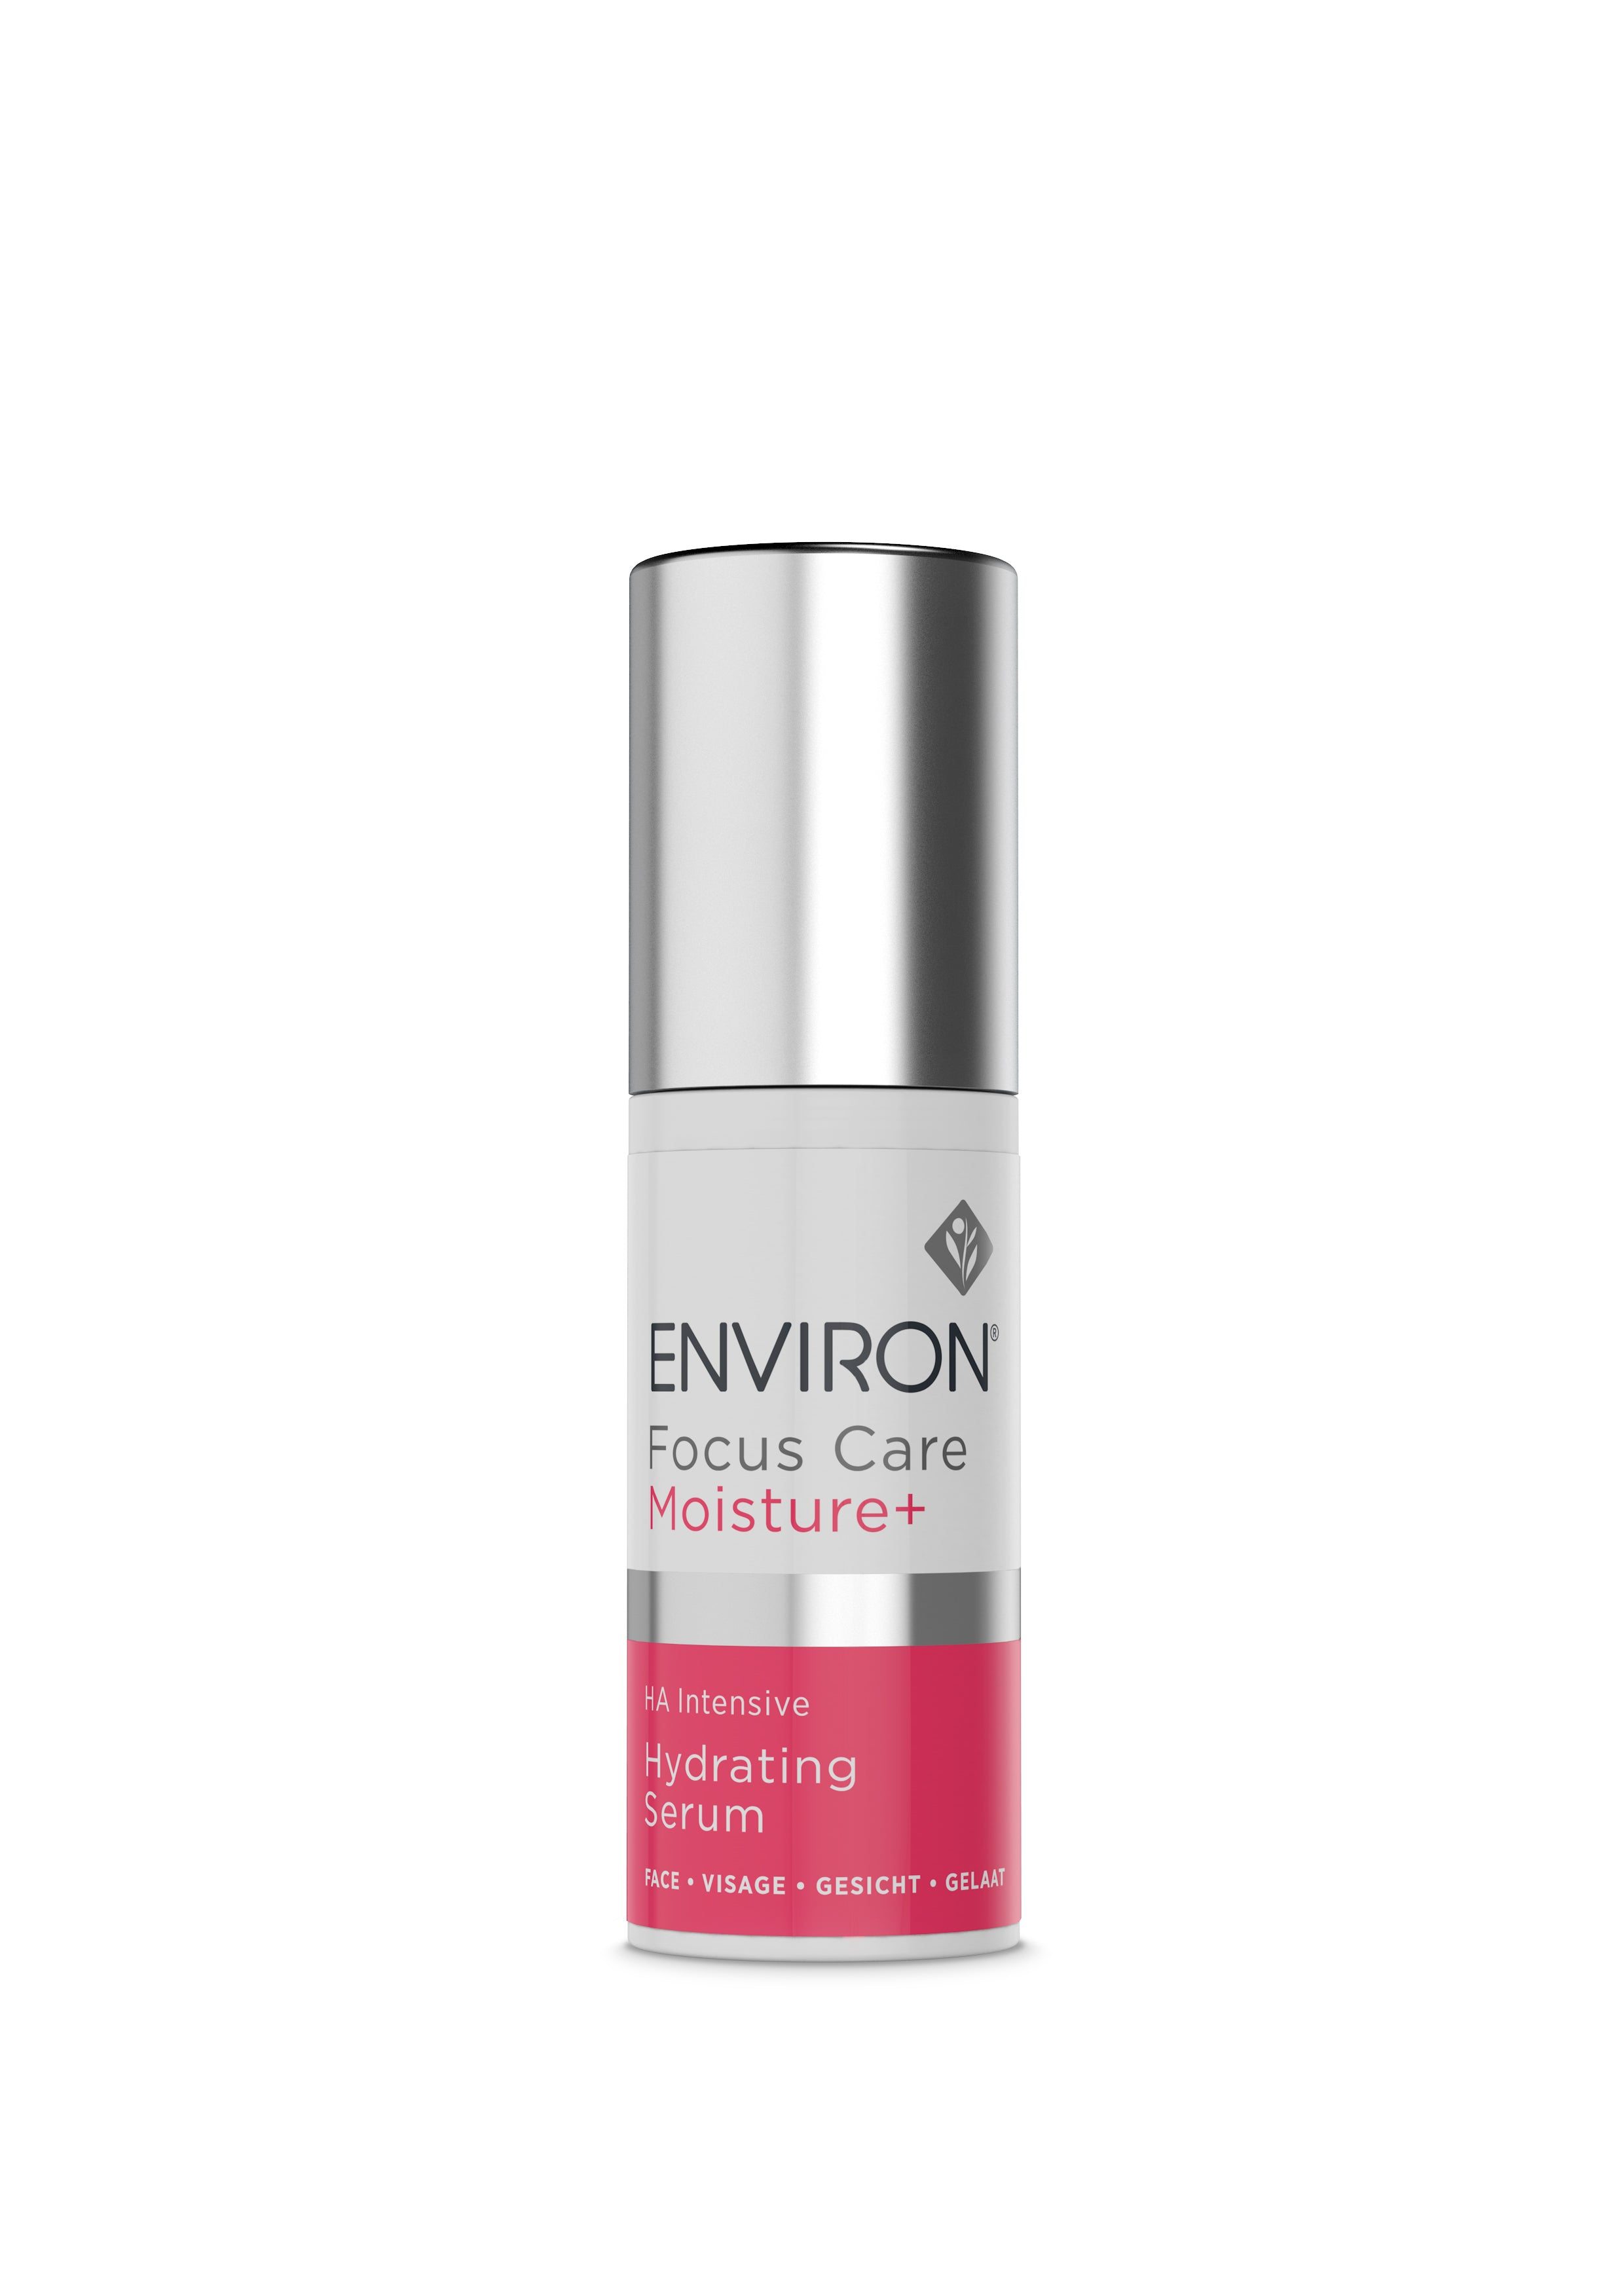 ENVIRON Hydrating Serum